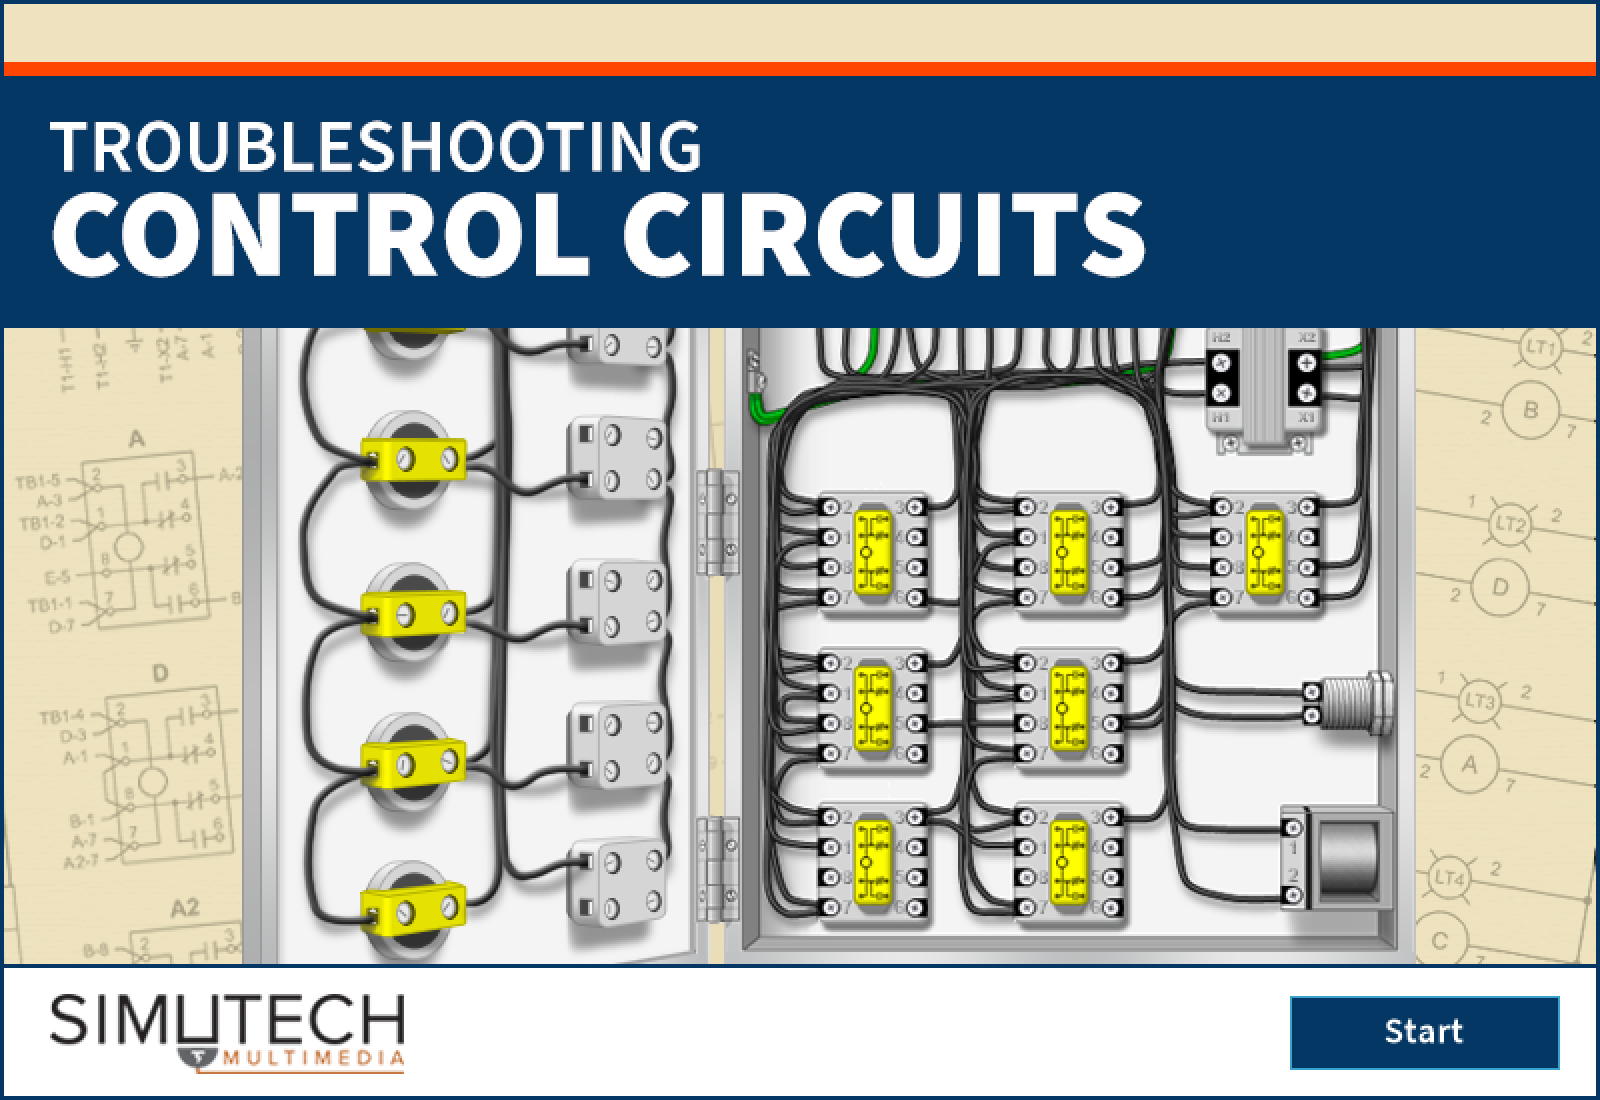 Troubleshooting Control Circuits